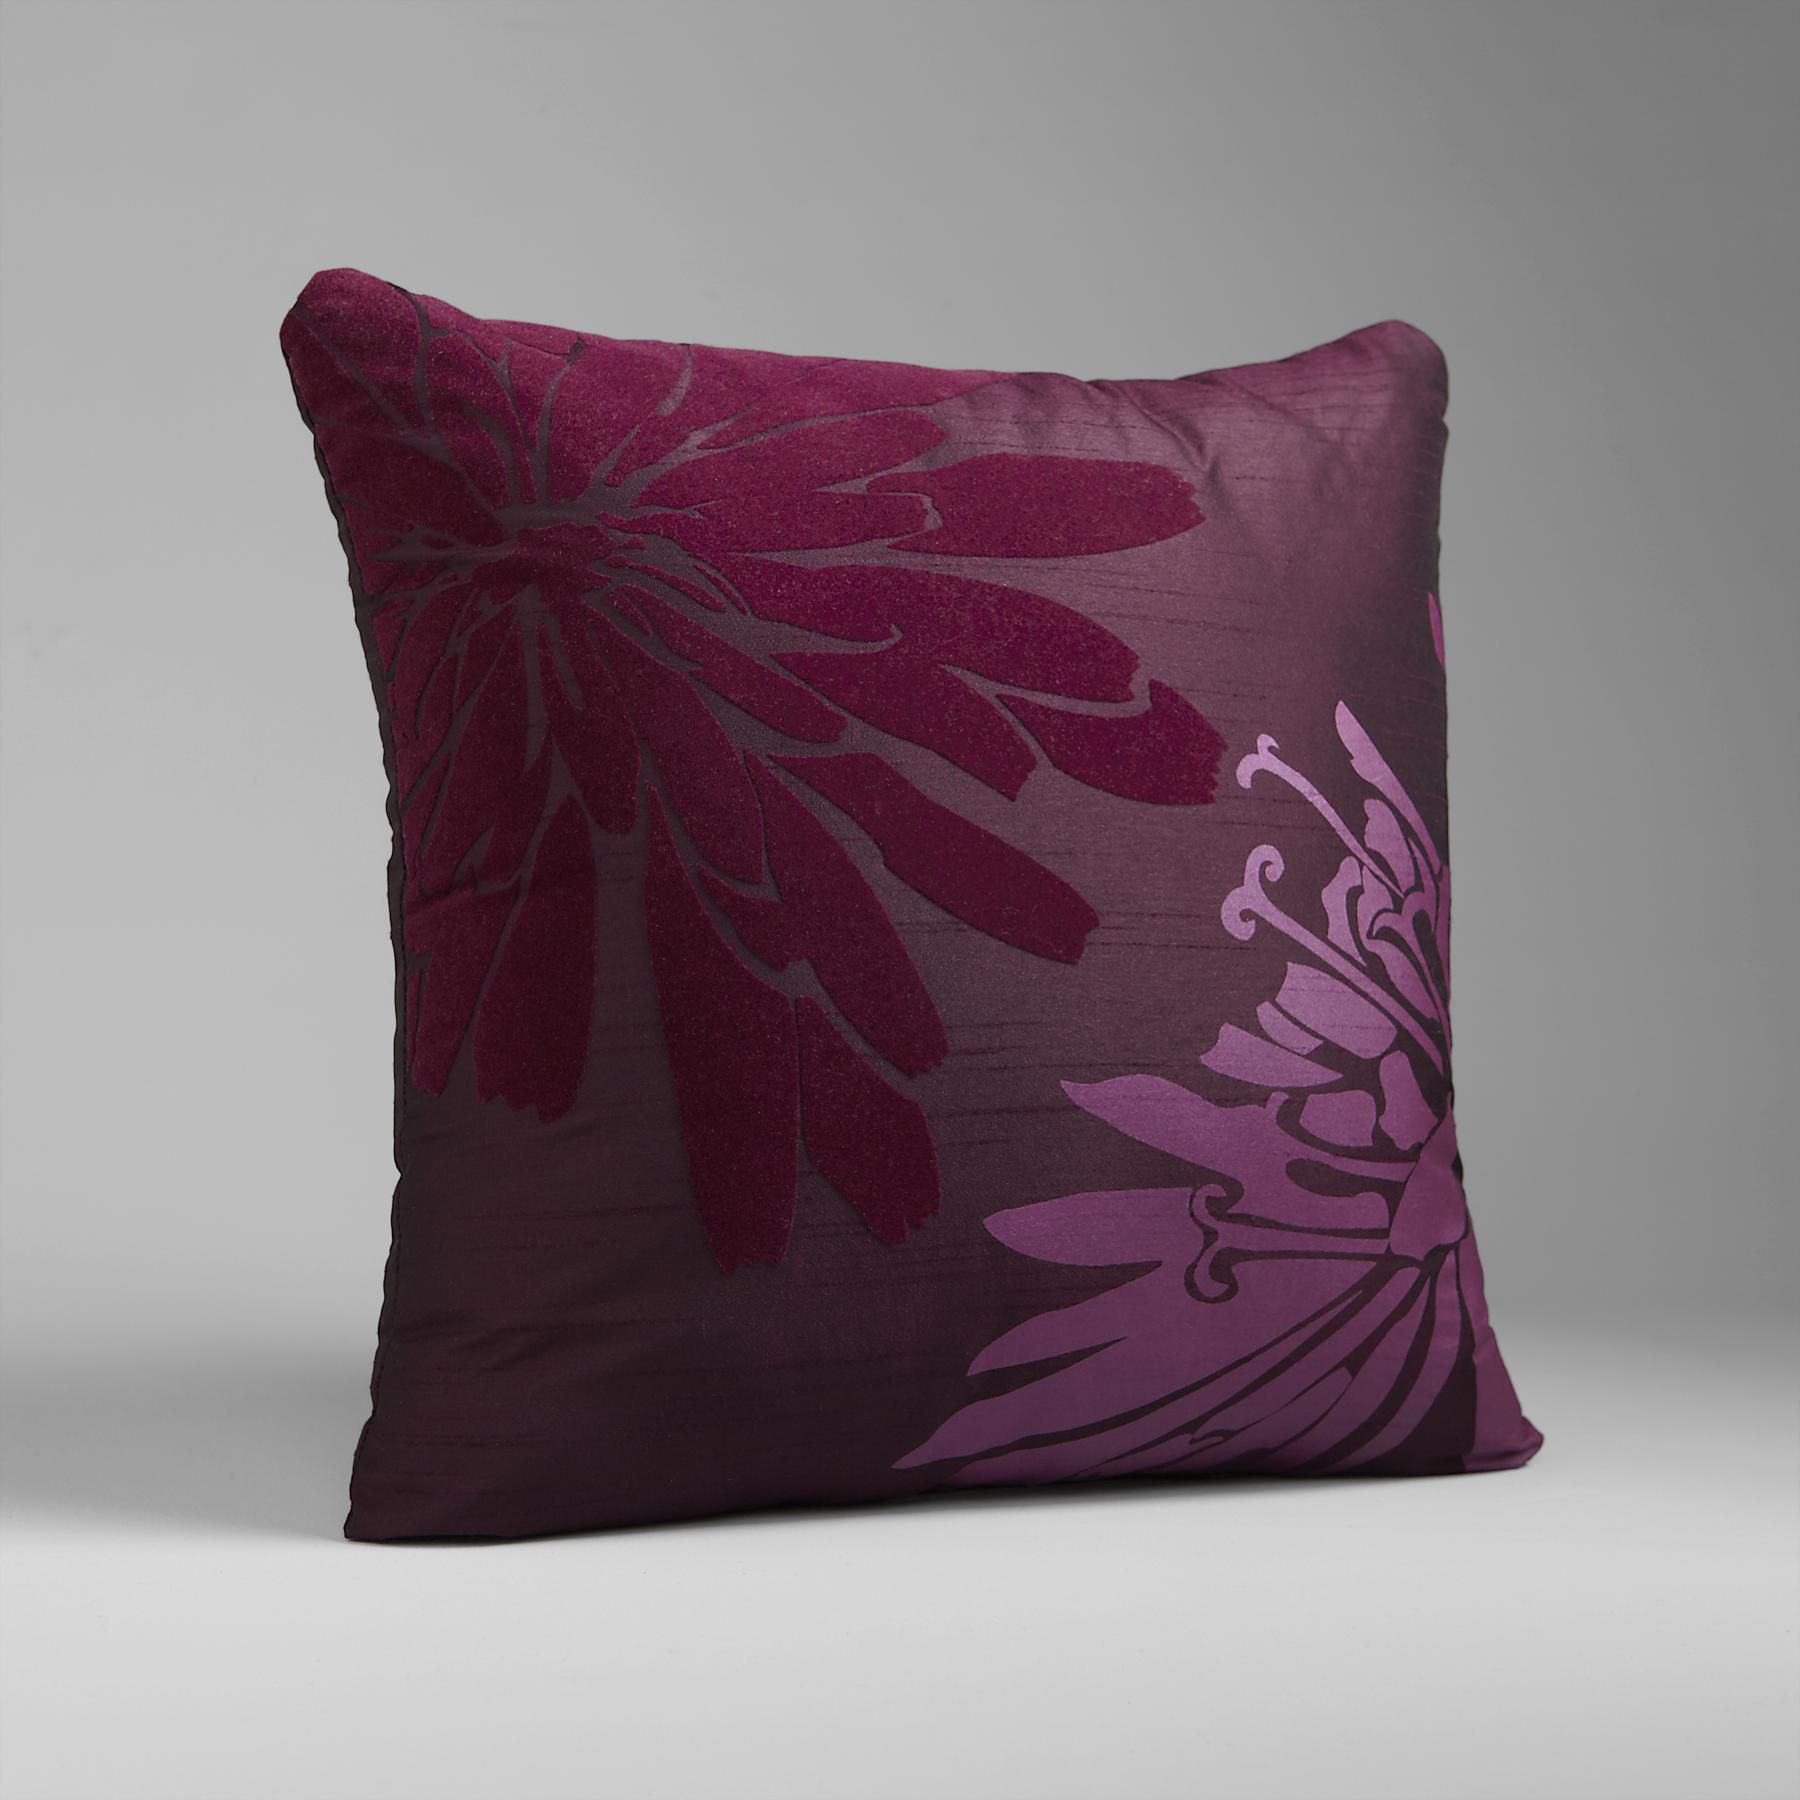 Floral Fantasy Decorative Pillow Flock